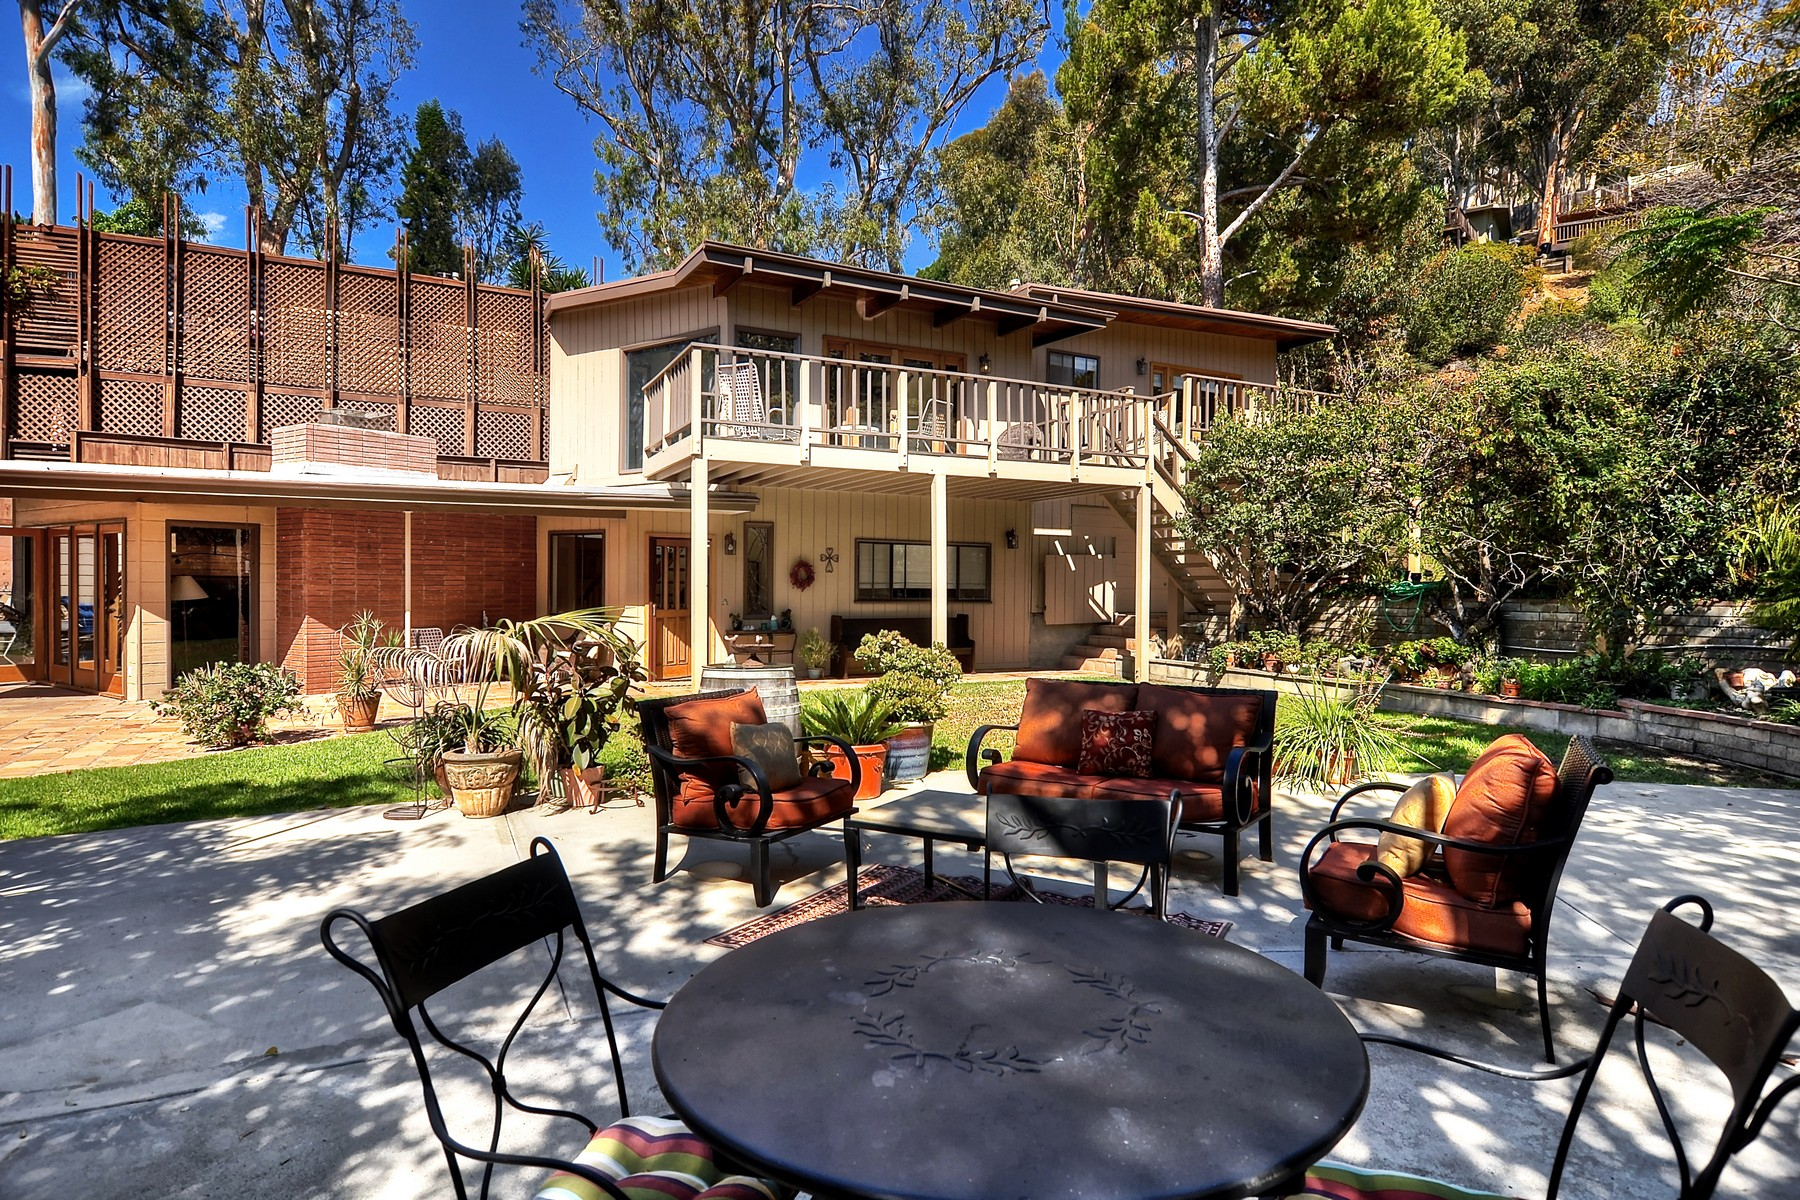 Casa Unifamiliar por un Venta en 31701 Mar Vista Ave. Laguna Beach, California, 92651 Estados Unidos